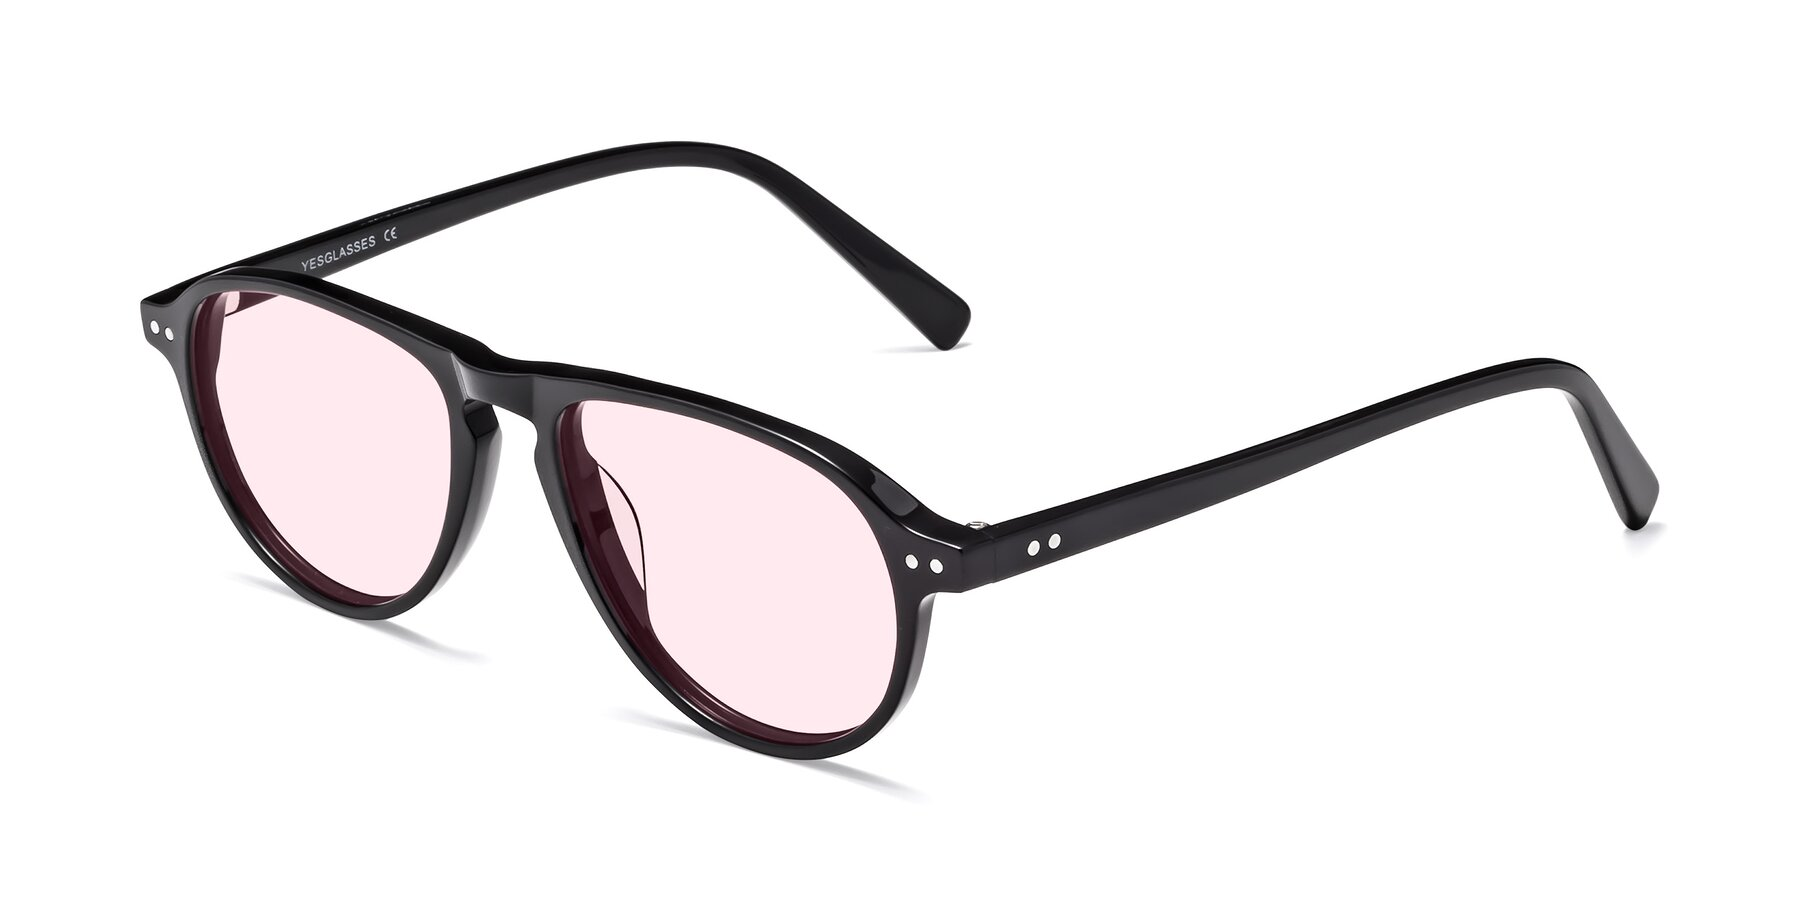 Angle of 17544 in Black with Light Pink Tinted Lenses